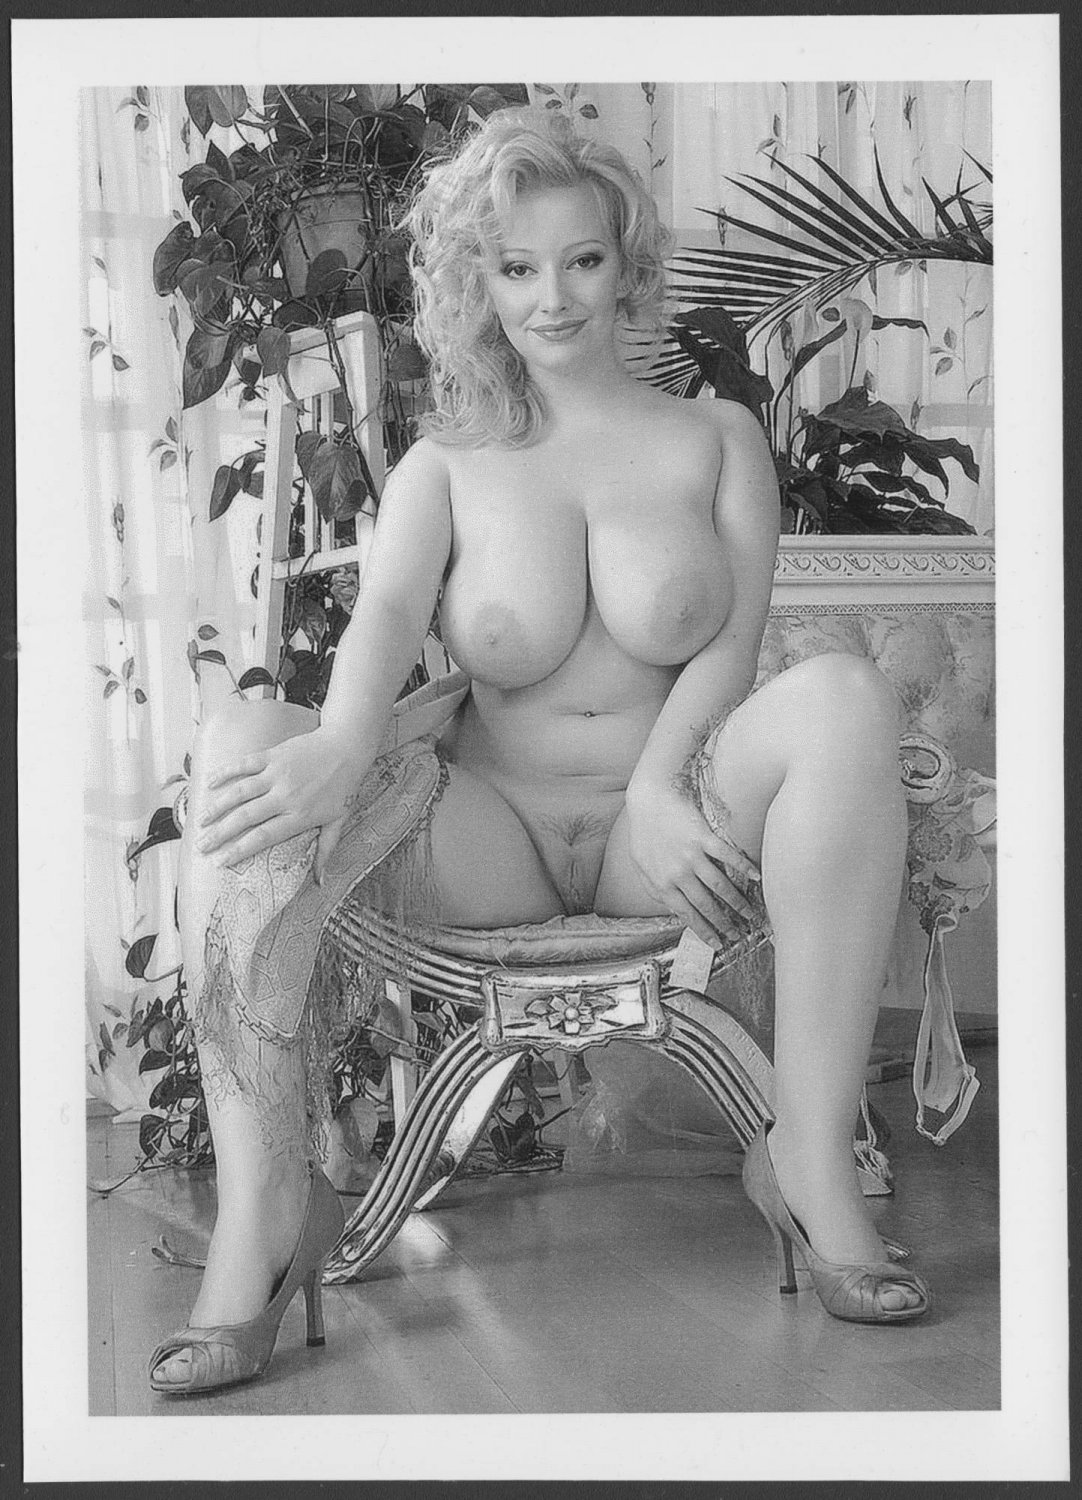 HOT BLONDE BABE SOPHIE MEI ALL NUDE BIG BOOBS SHAVED PUSSY POSE NEW REPRINT PHOTO 5 X 7  #66